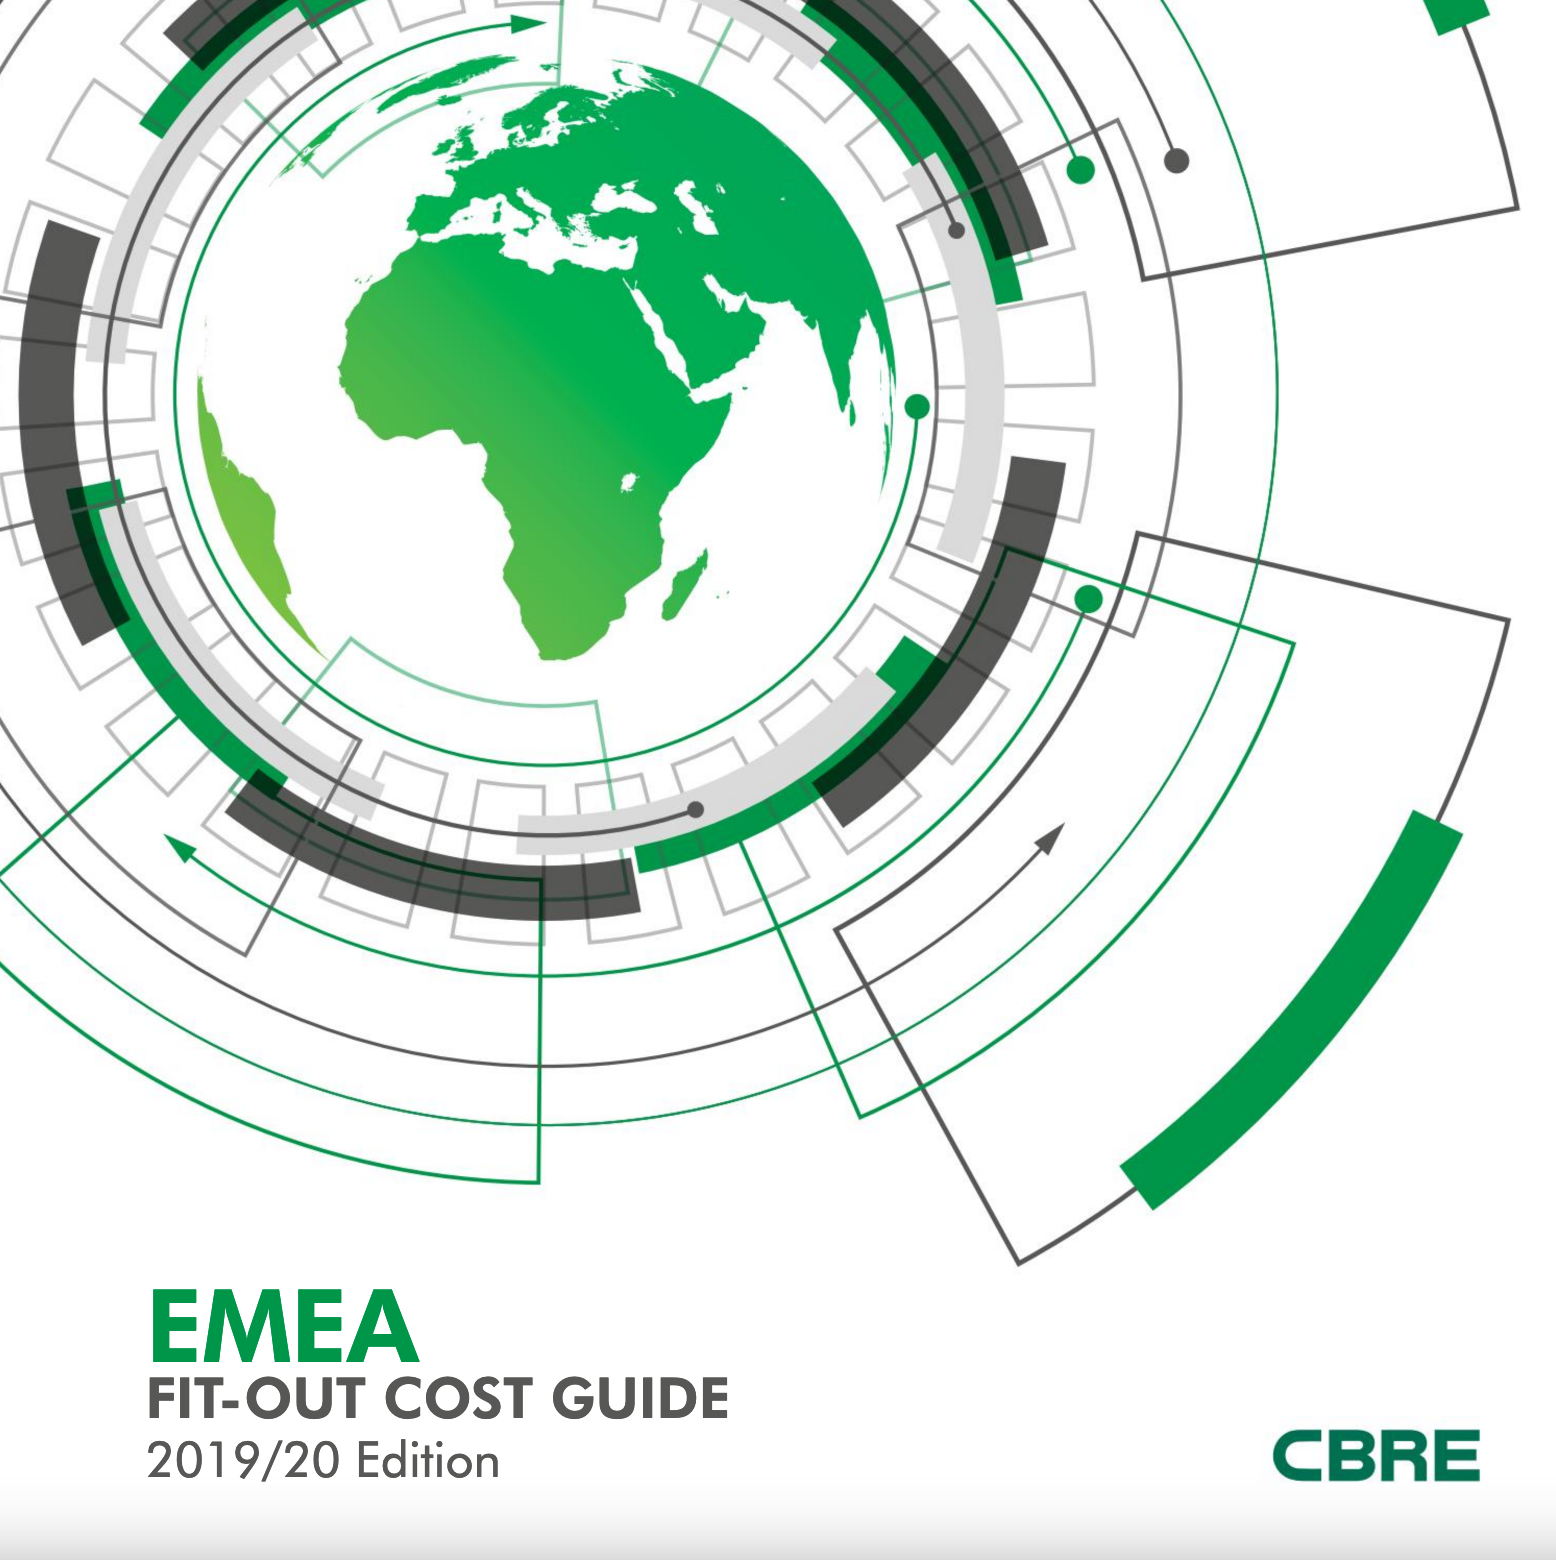 EMEA Pacific Fit-Out Cost Guide 2019/20